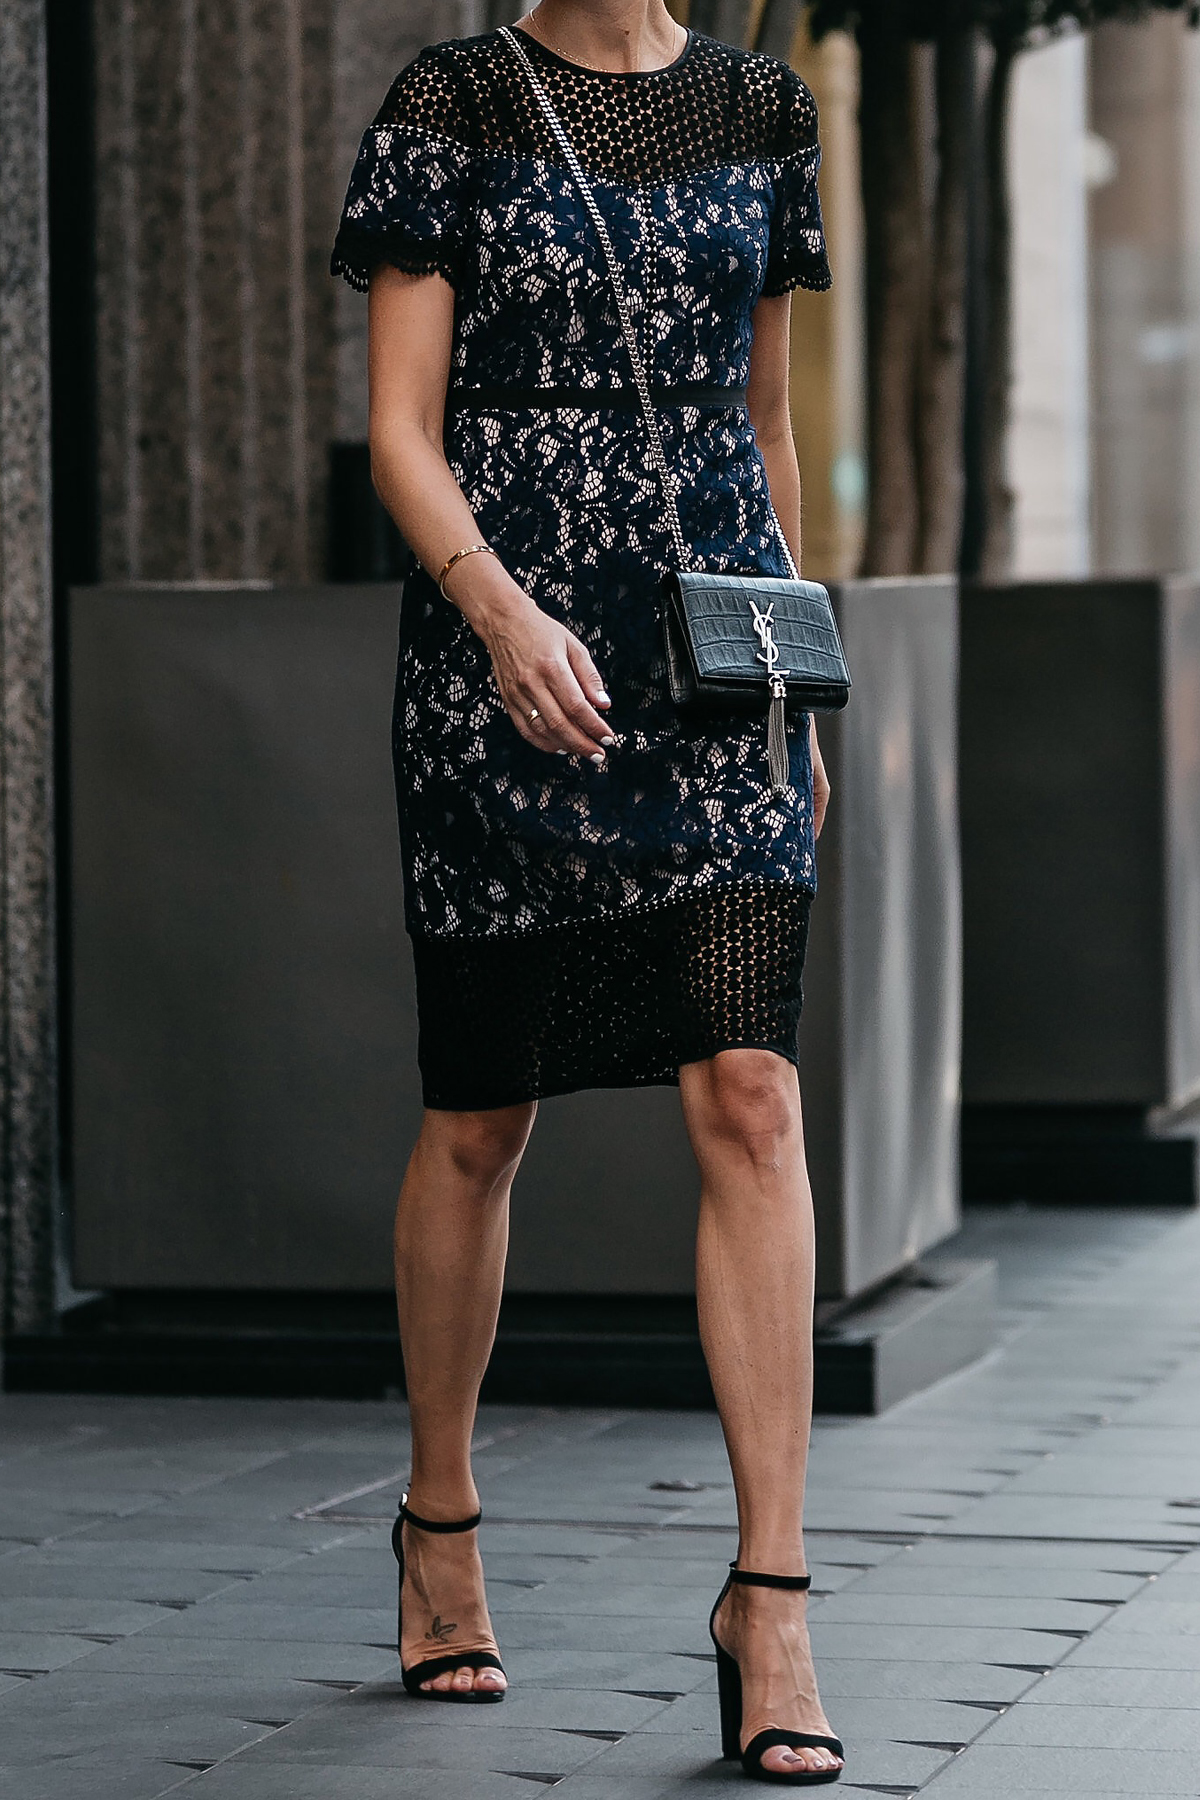 Club Monaco Black Navy Lace Dress YSL Black Monogram Tassel Clutch Black Ankle Strap Heeled Sandals Fashion Jackson Dallas Blogger Fashion Blogger Street Style